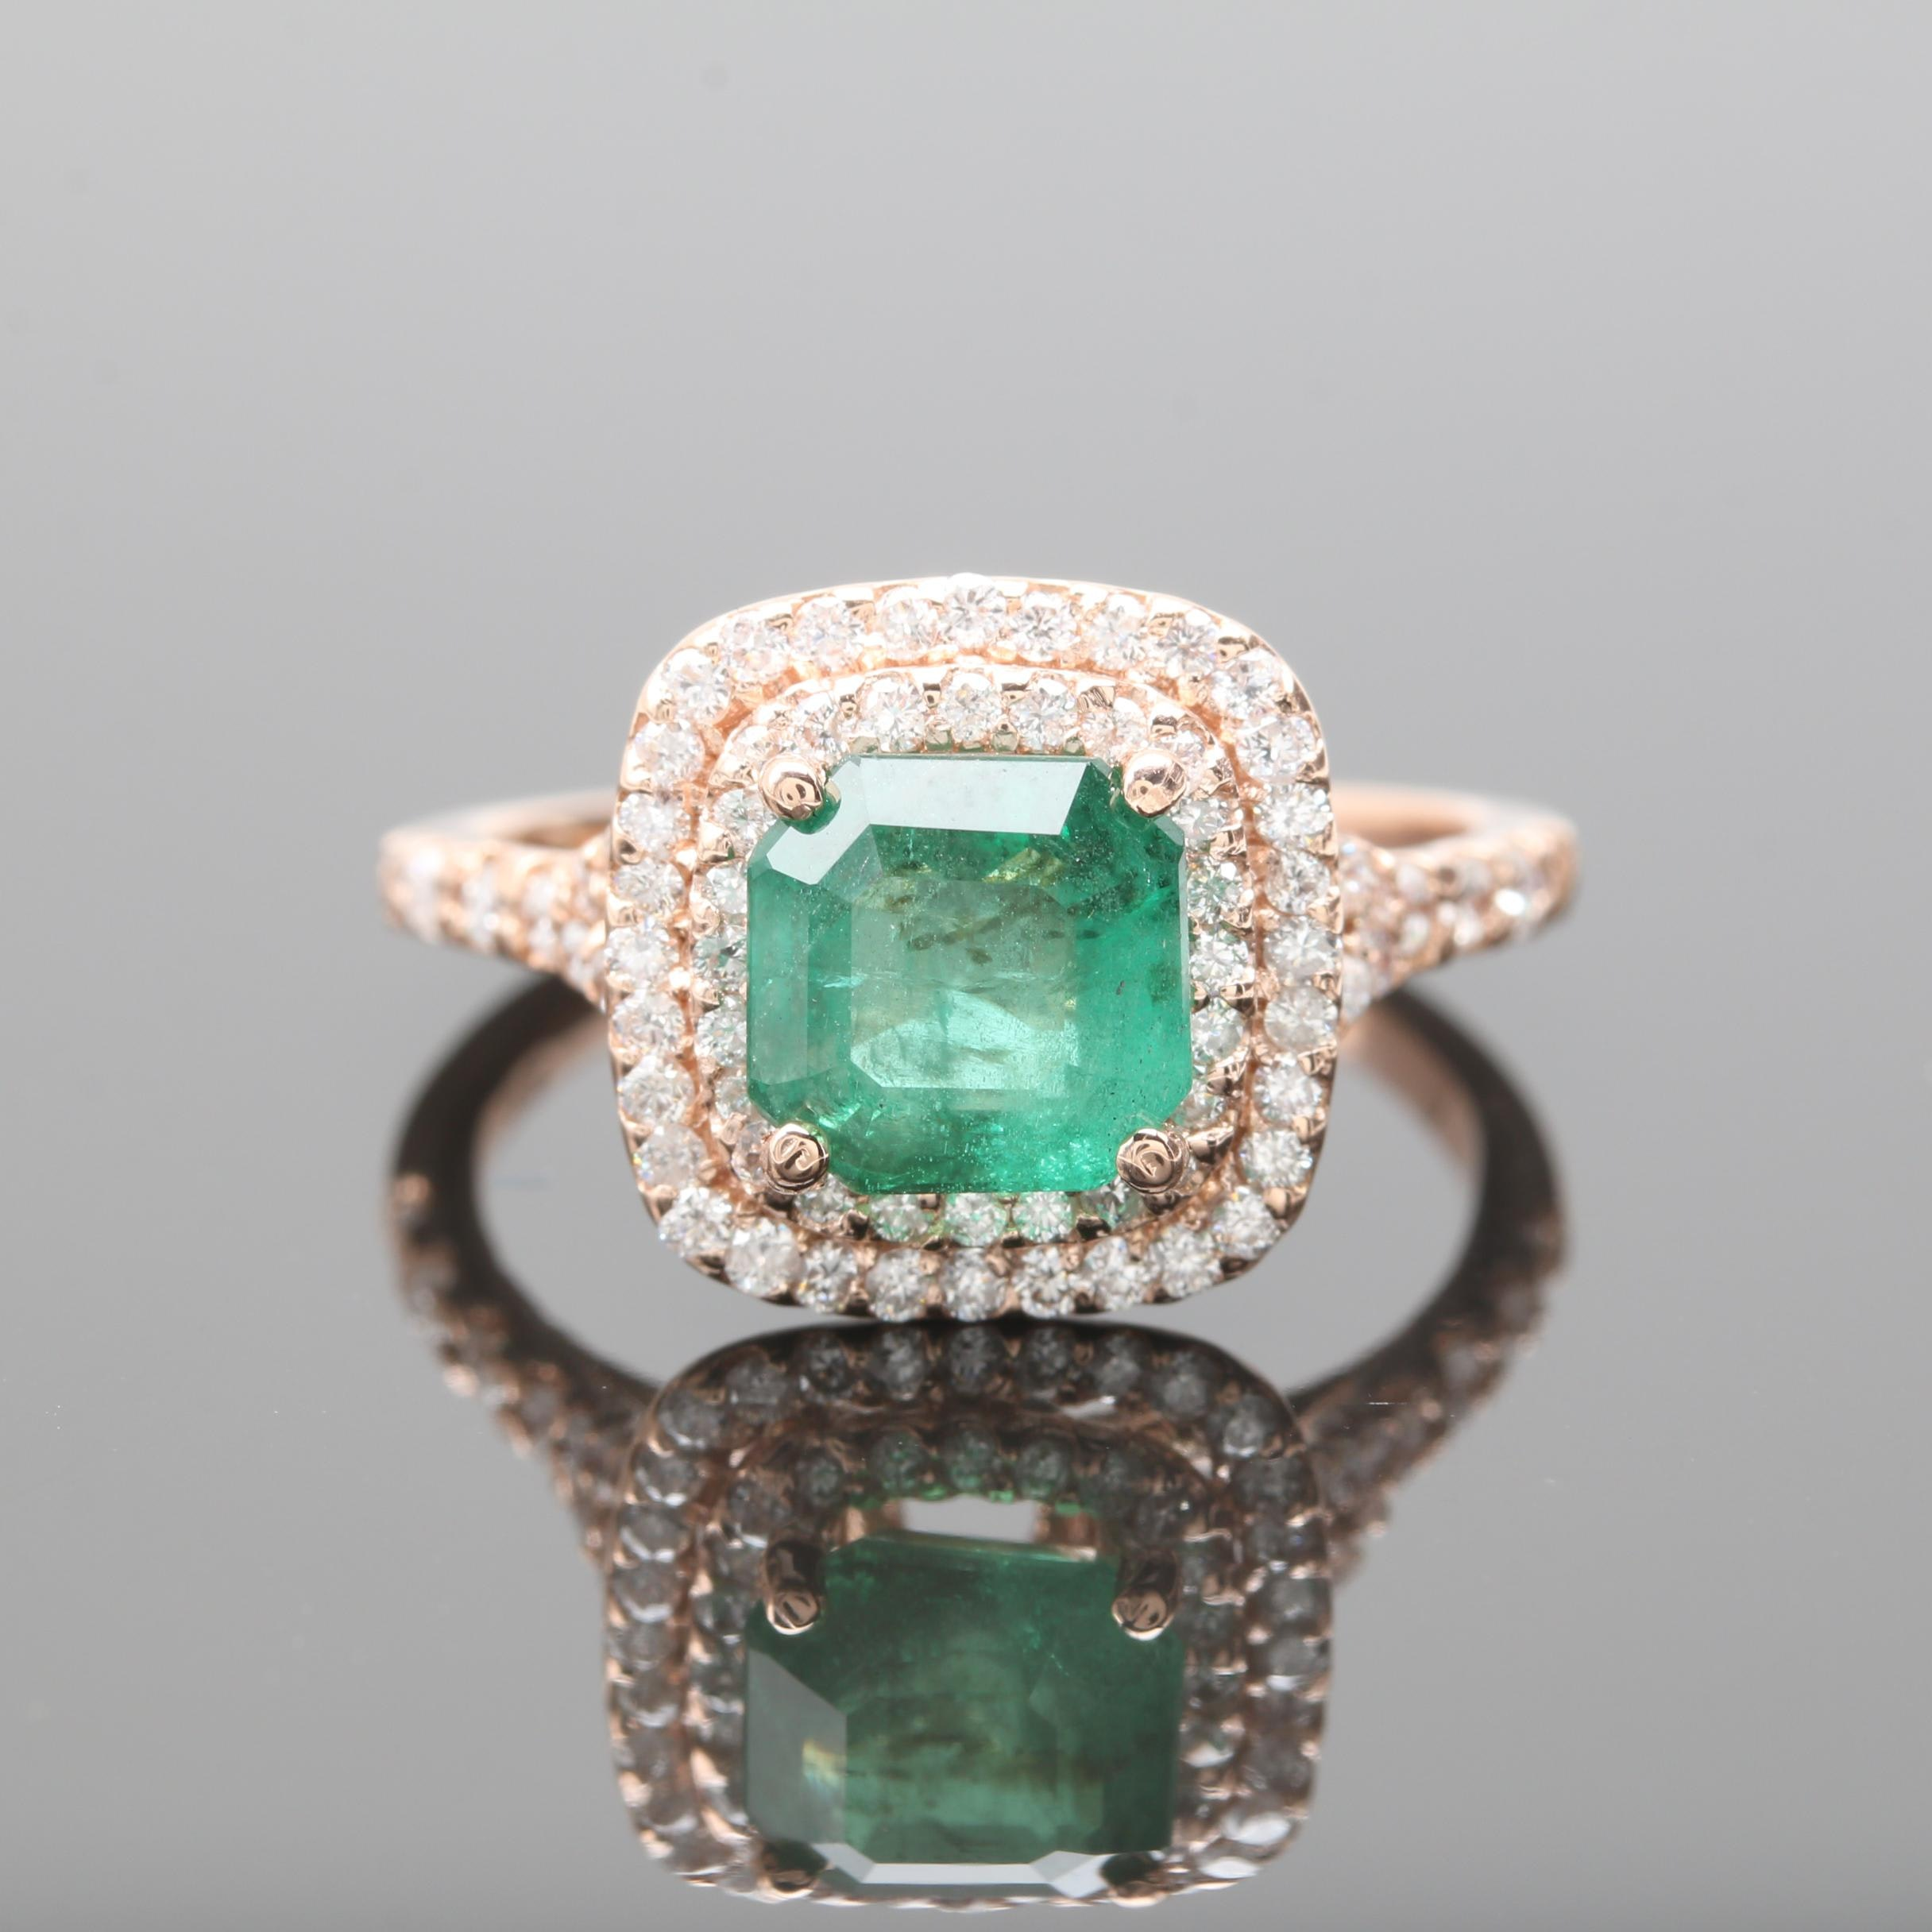 14K Rose Gold 1.59 CT Emerald and Diamond Ring